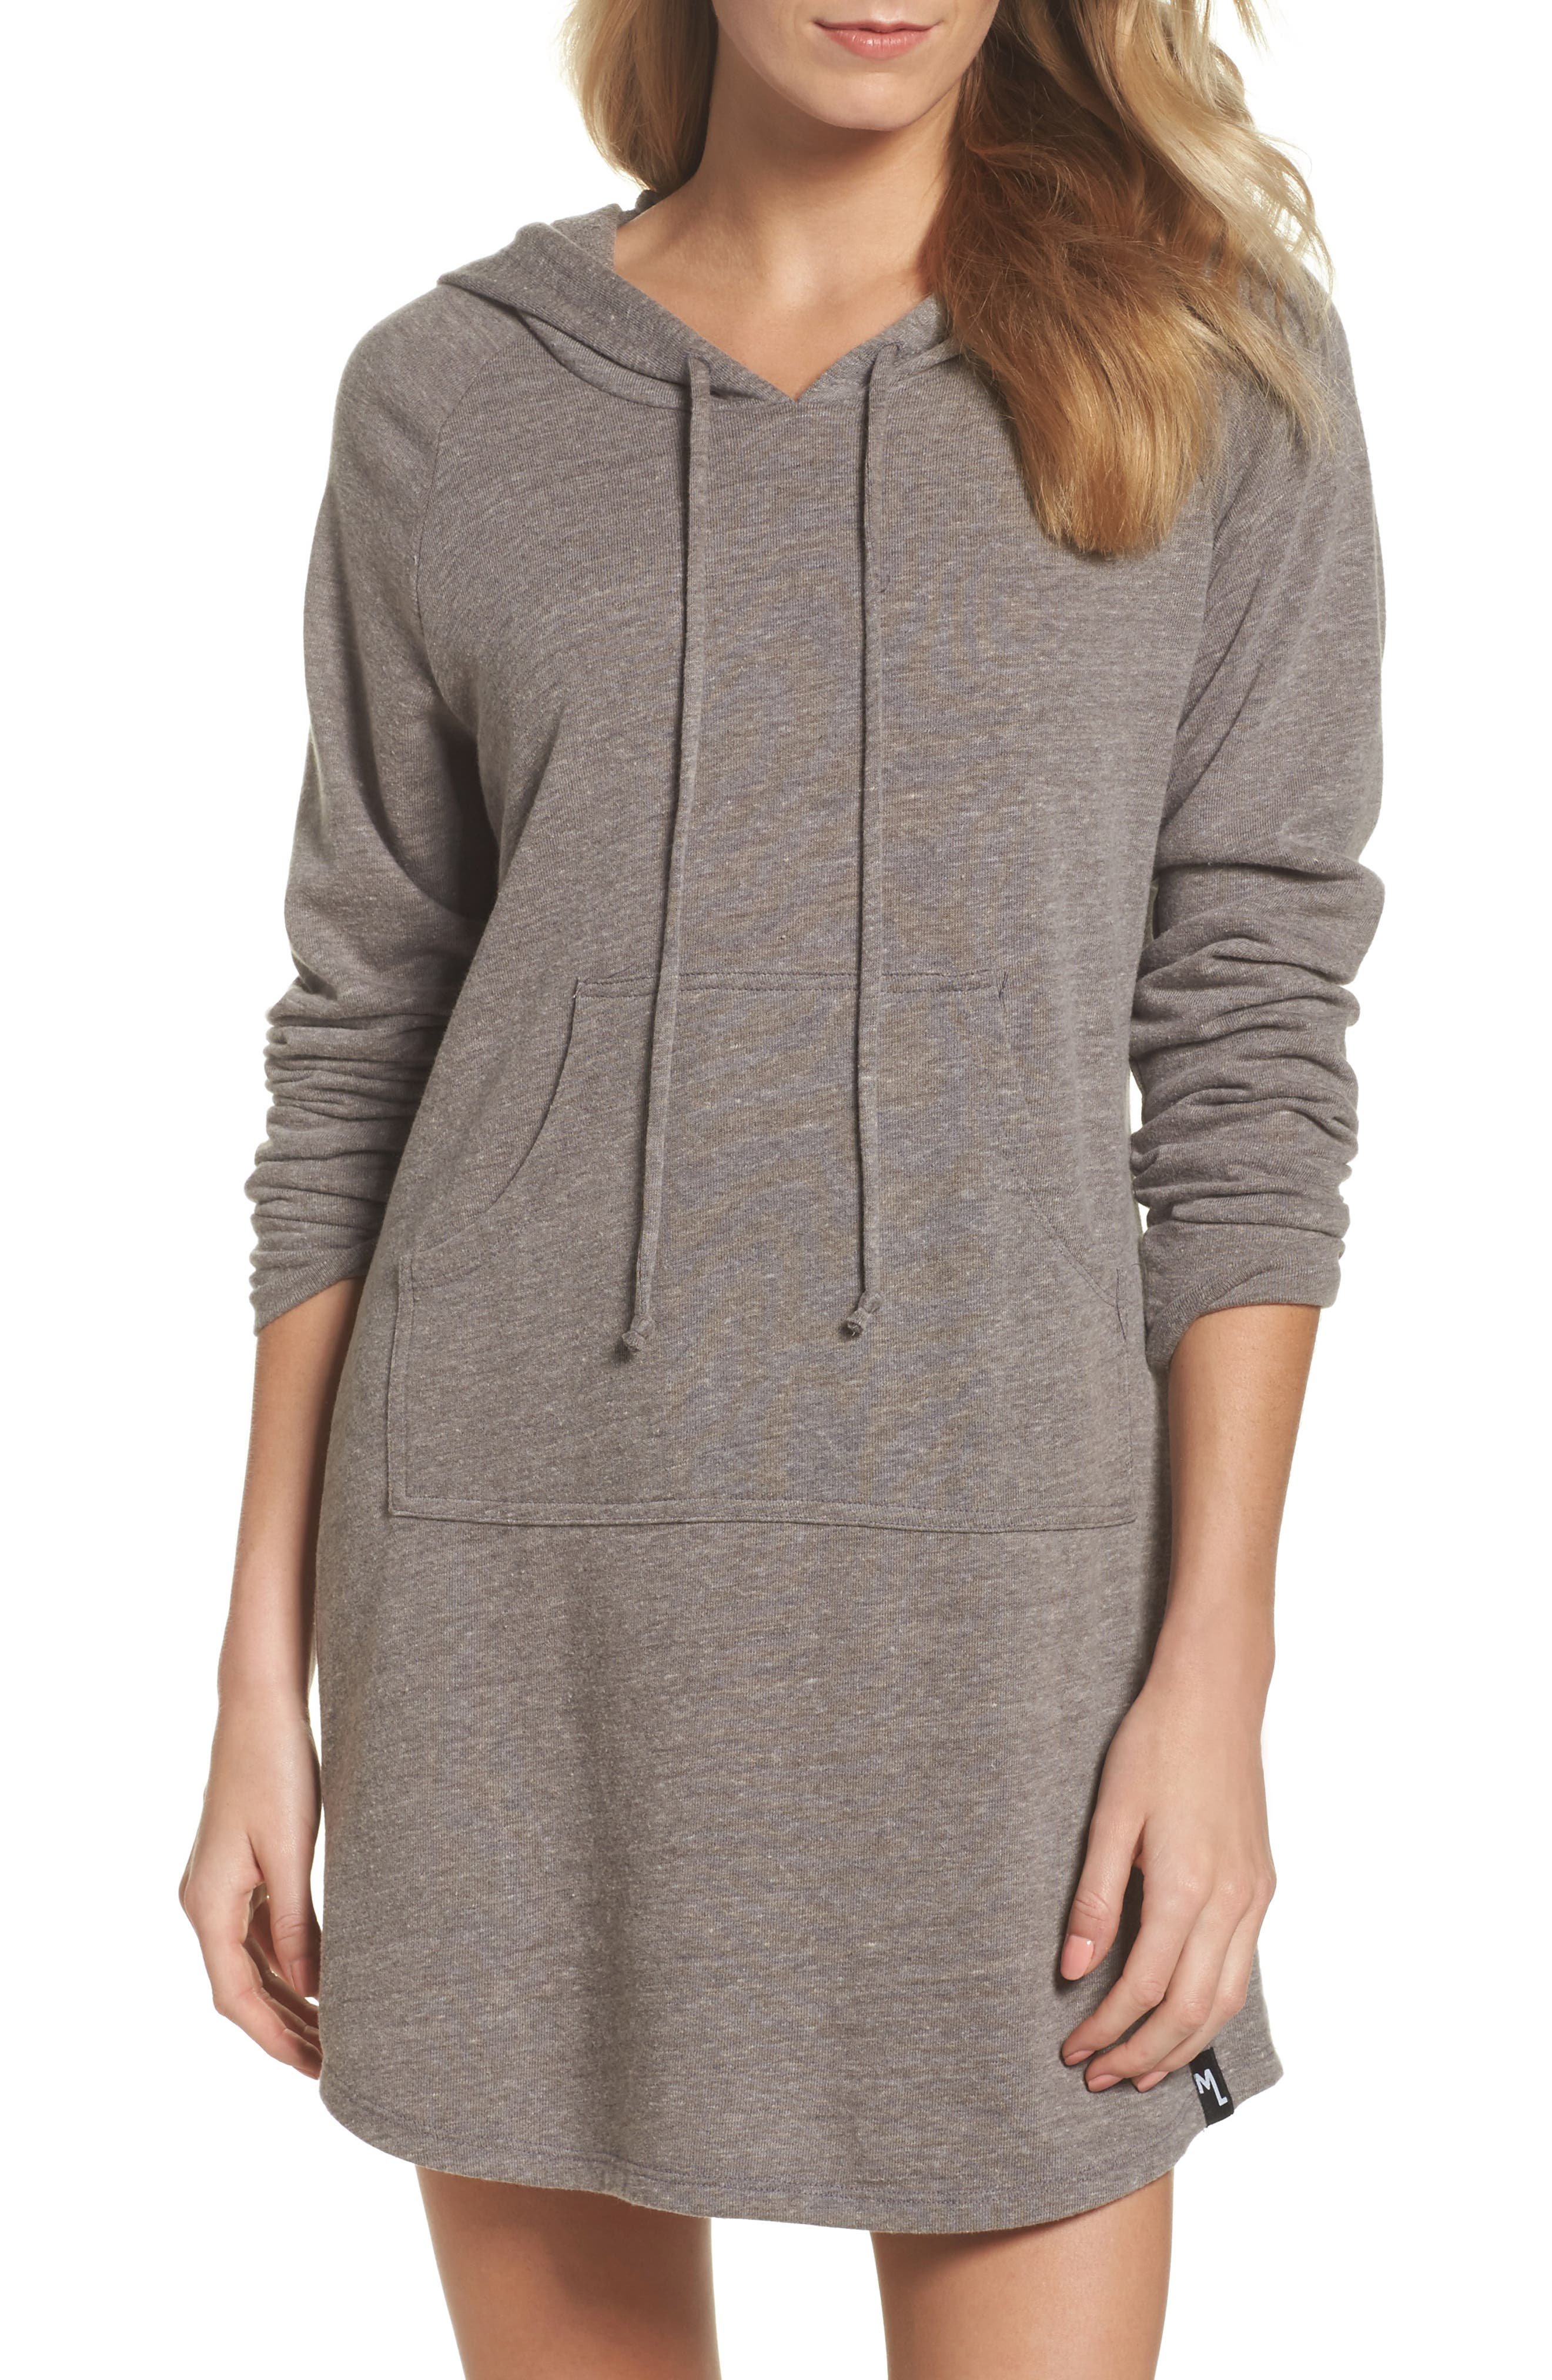 Erwin Hooded Dress,                         Main,                         color, 035